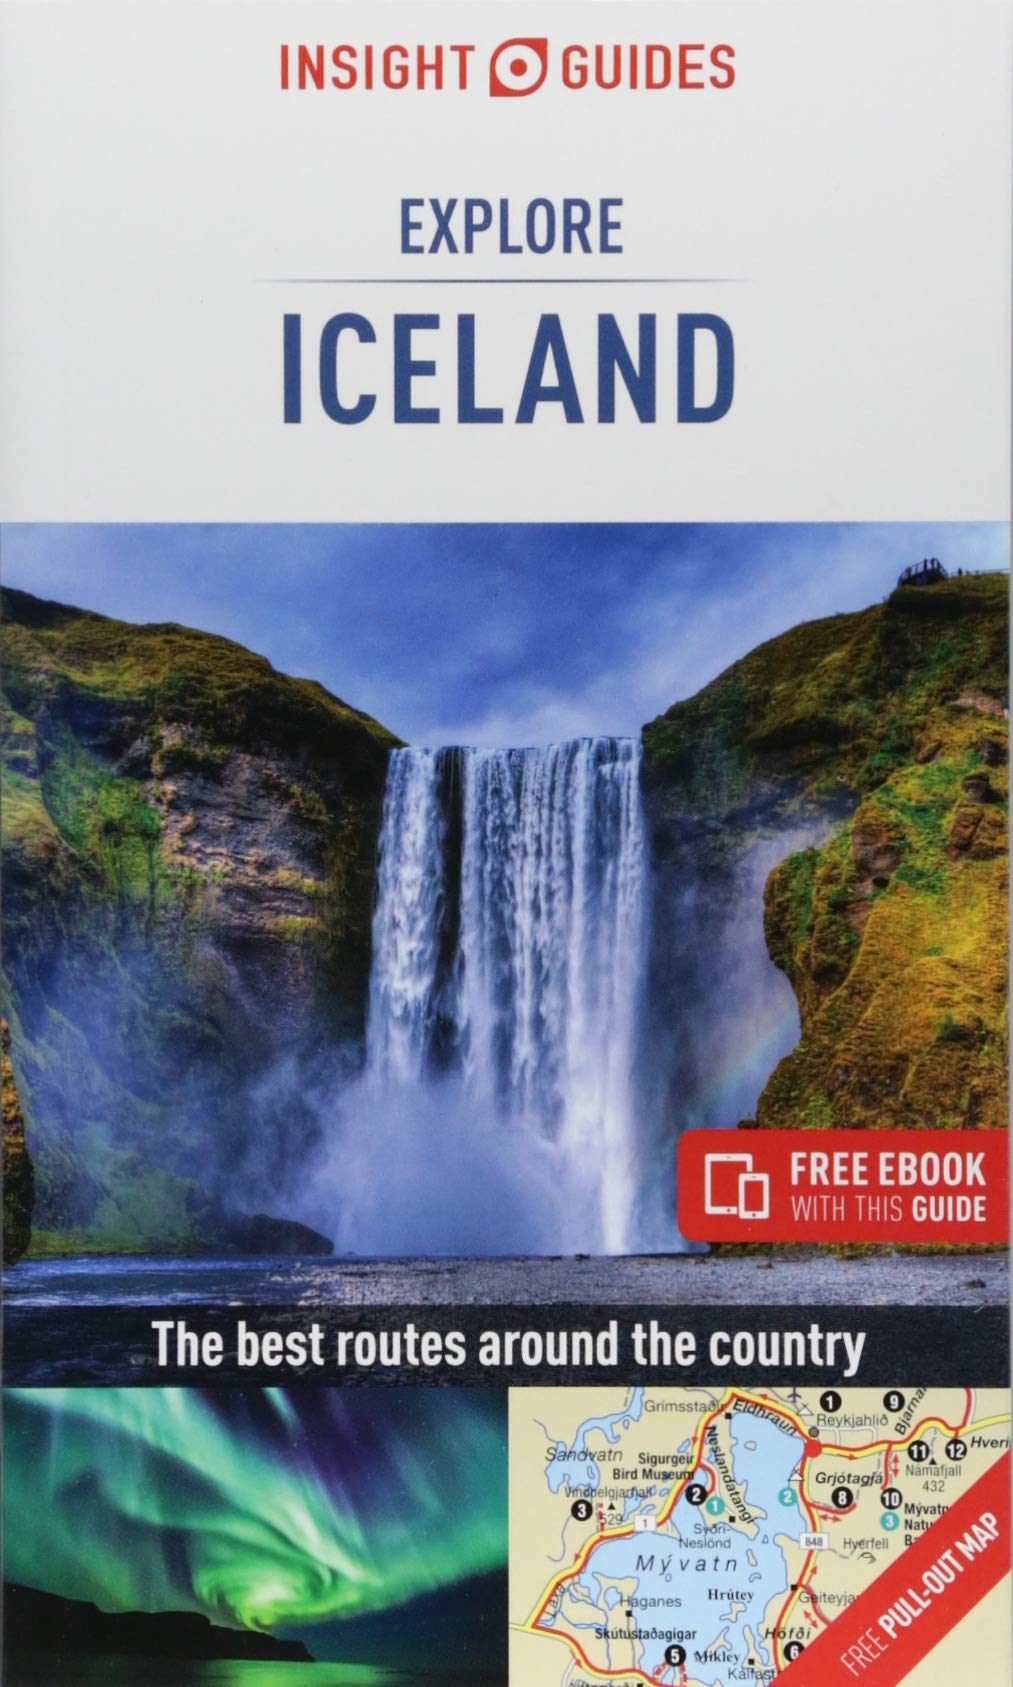 Insight Guides Explore Iceland (Insight Explore Guides) Paperback – August 1, 2018 1786718235 Northern Europe Scandinavia Guidebooks